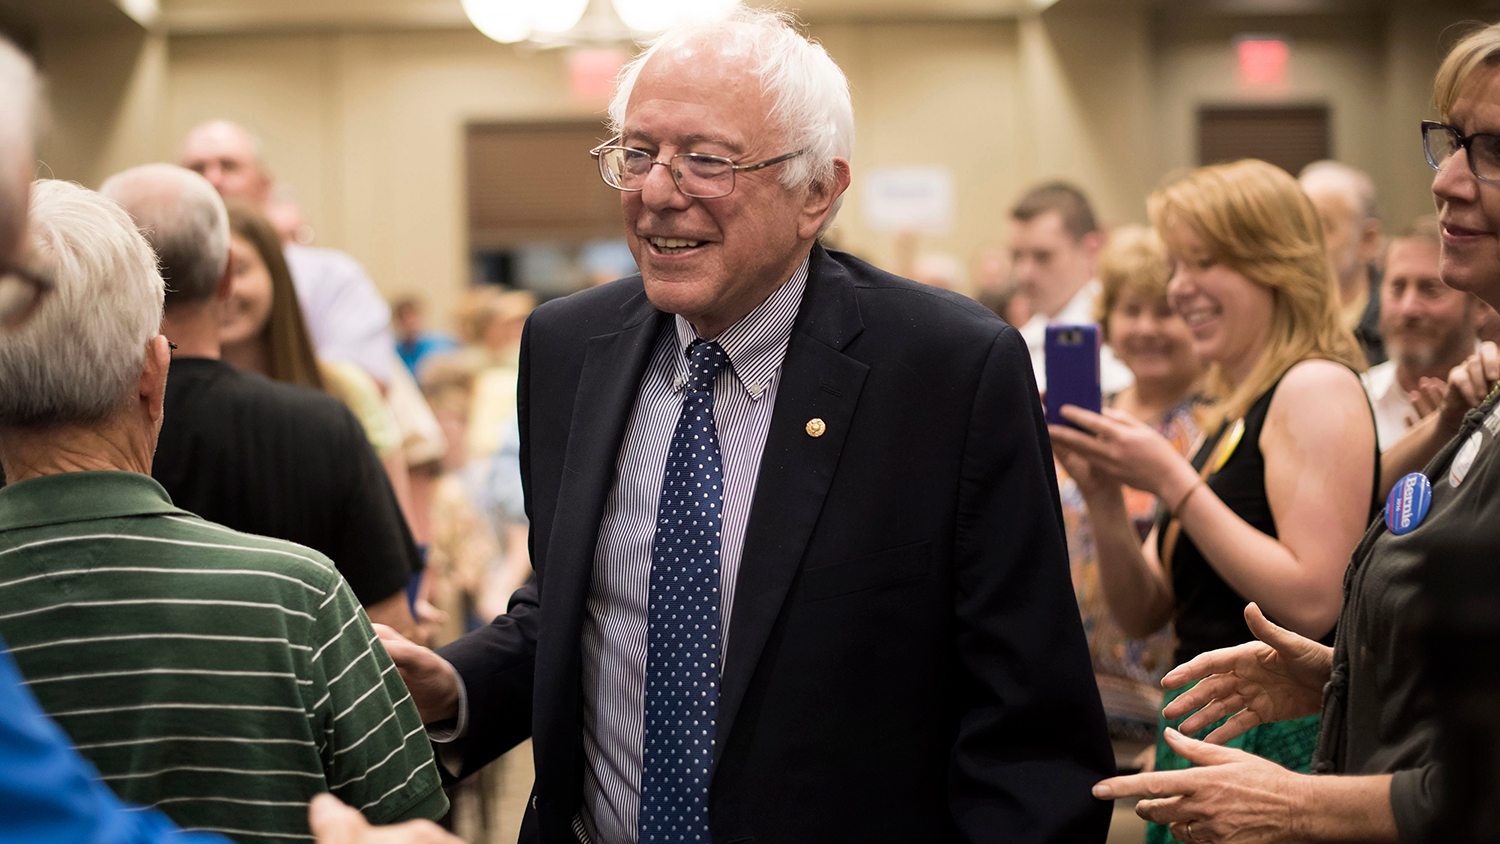 Senator Bernie Sanders arrives for a town hall meeting in Davenport, Iowa, on May 28, 2015.